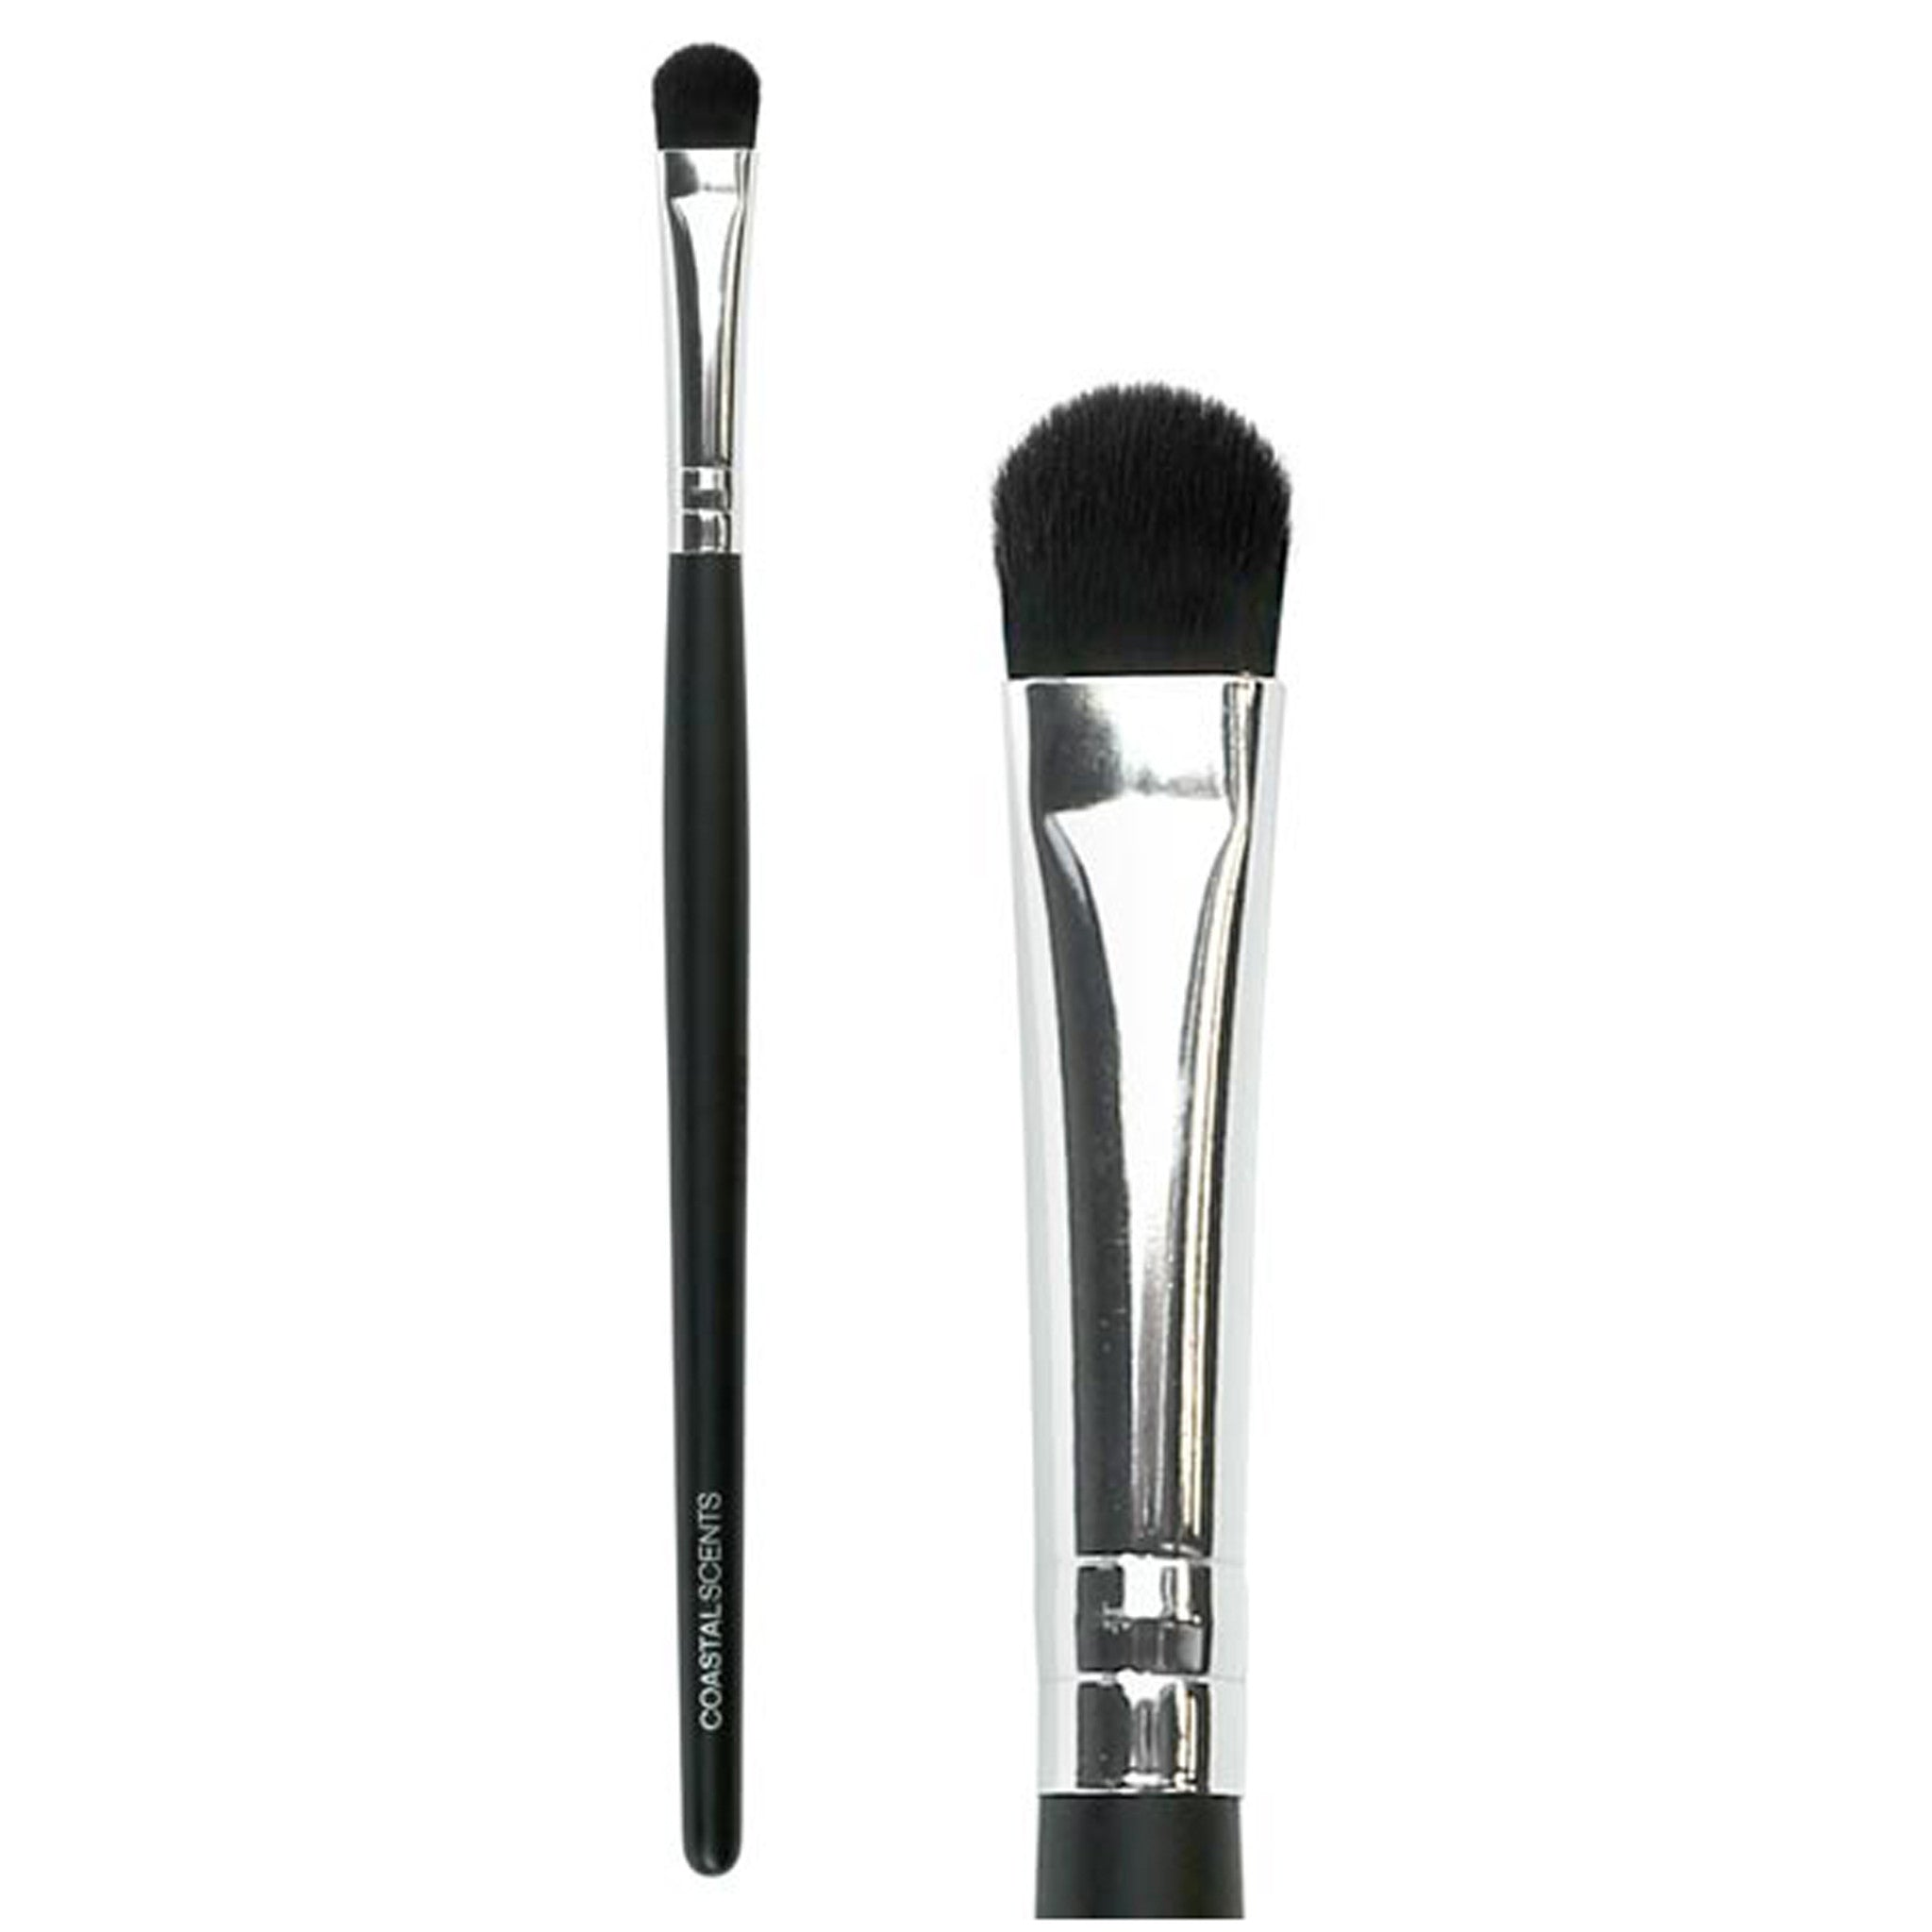 fb574390595 Eye Brushes Archives - Exclsuive Beauty Store